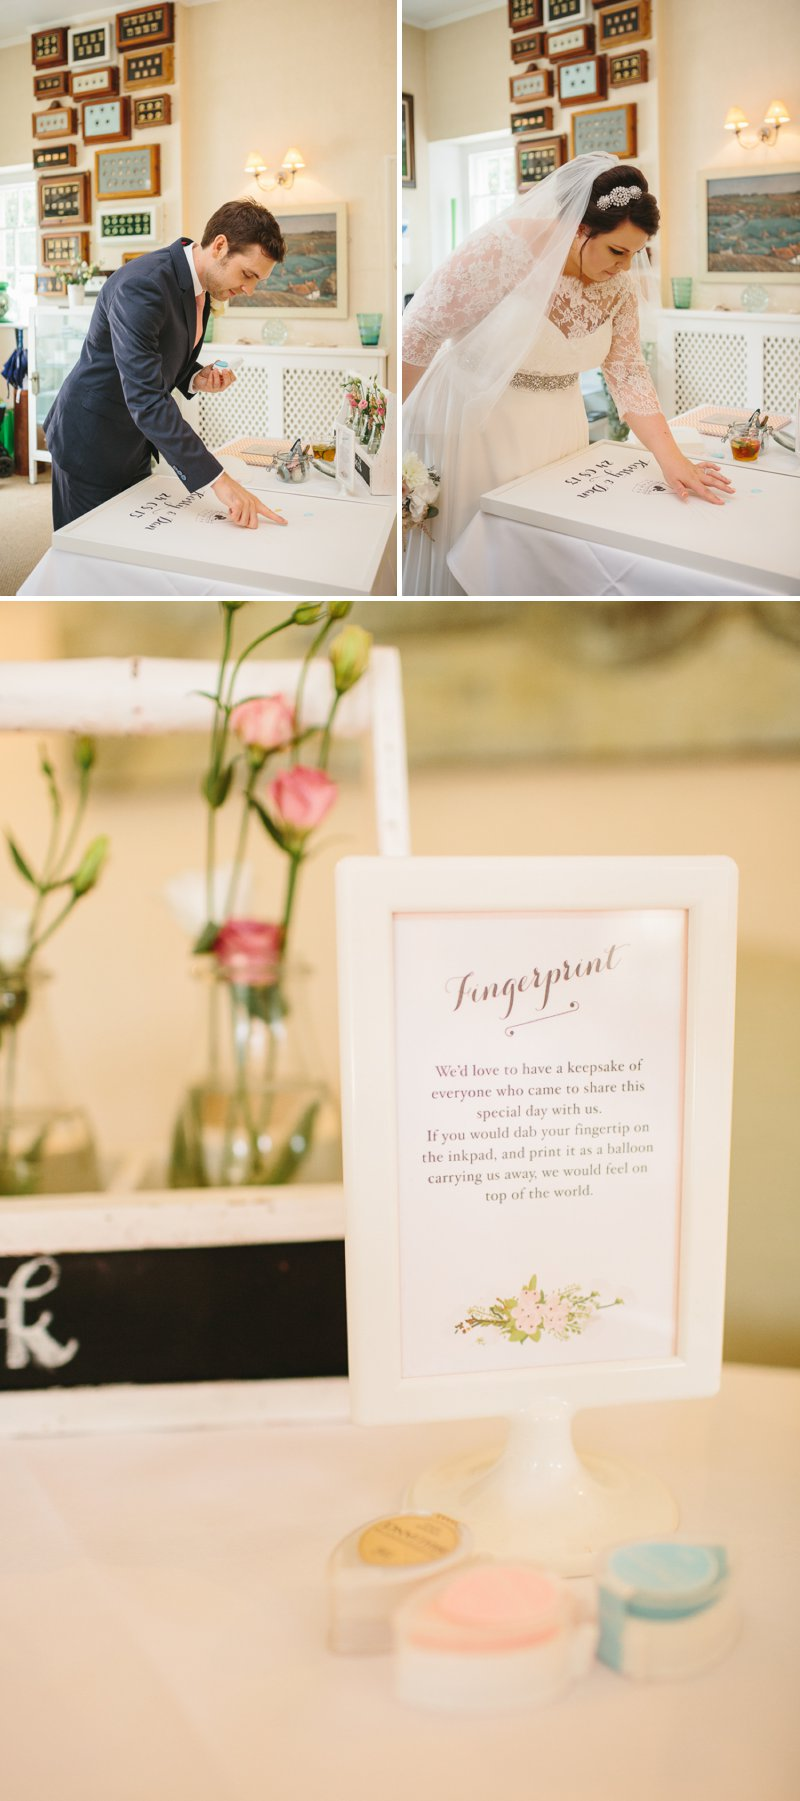 Blush Pink And Gold Glitter Themed Wedding At The Rectory Hotel With Bride In Bespoke Gown By Dana Bolton And Groom In Ted Baker Pashion Suit With Elegant Typography Across The Paper Goods And Images By Shell de Mar Photography 8